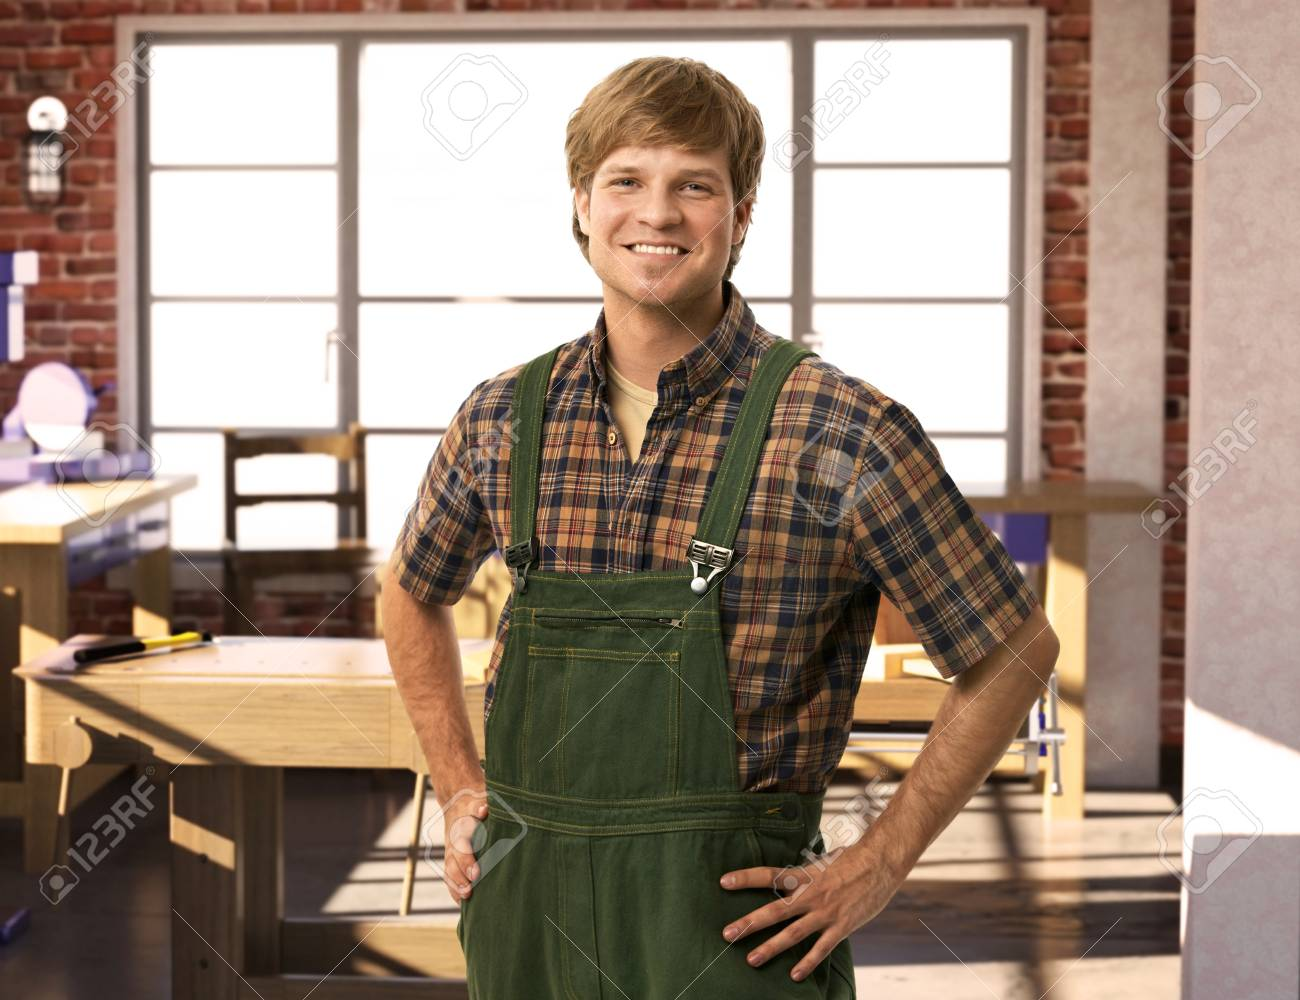 Happy young handyman carpenter in workshop, smiling. Stock Photo - 23206615